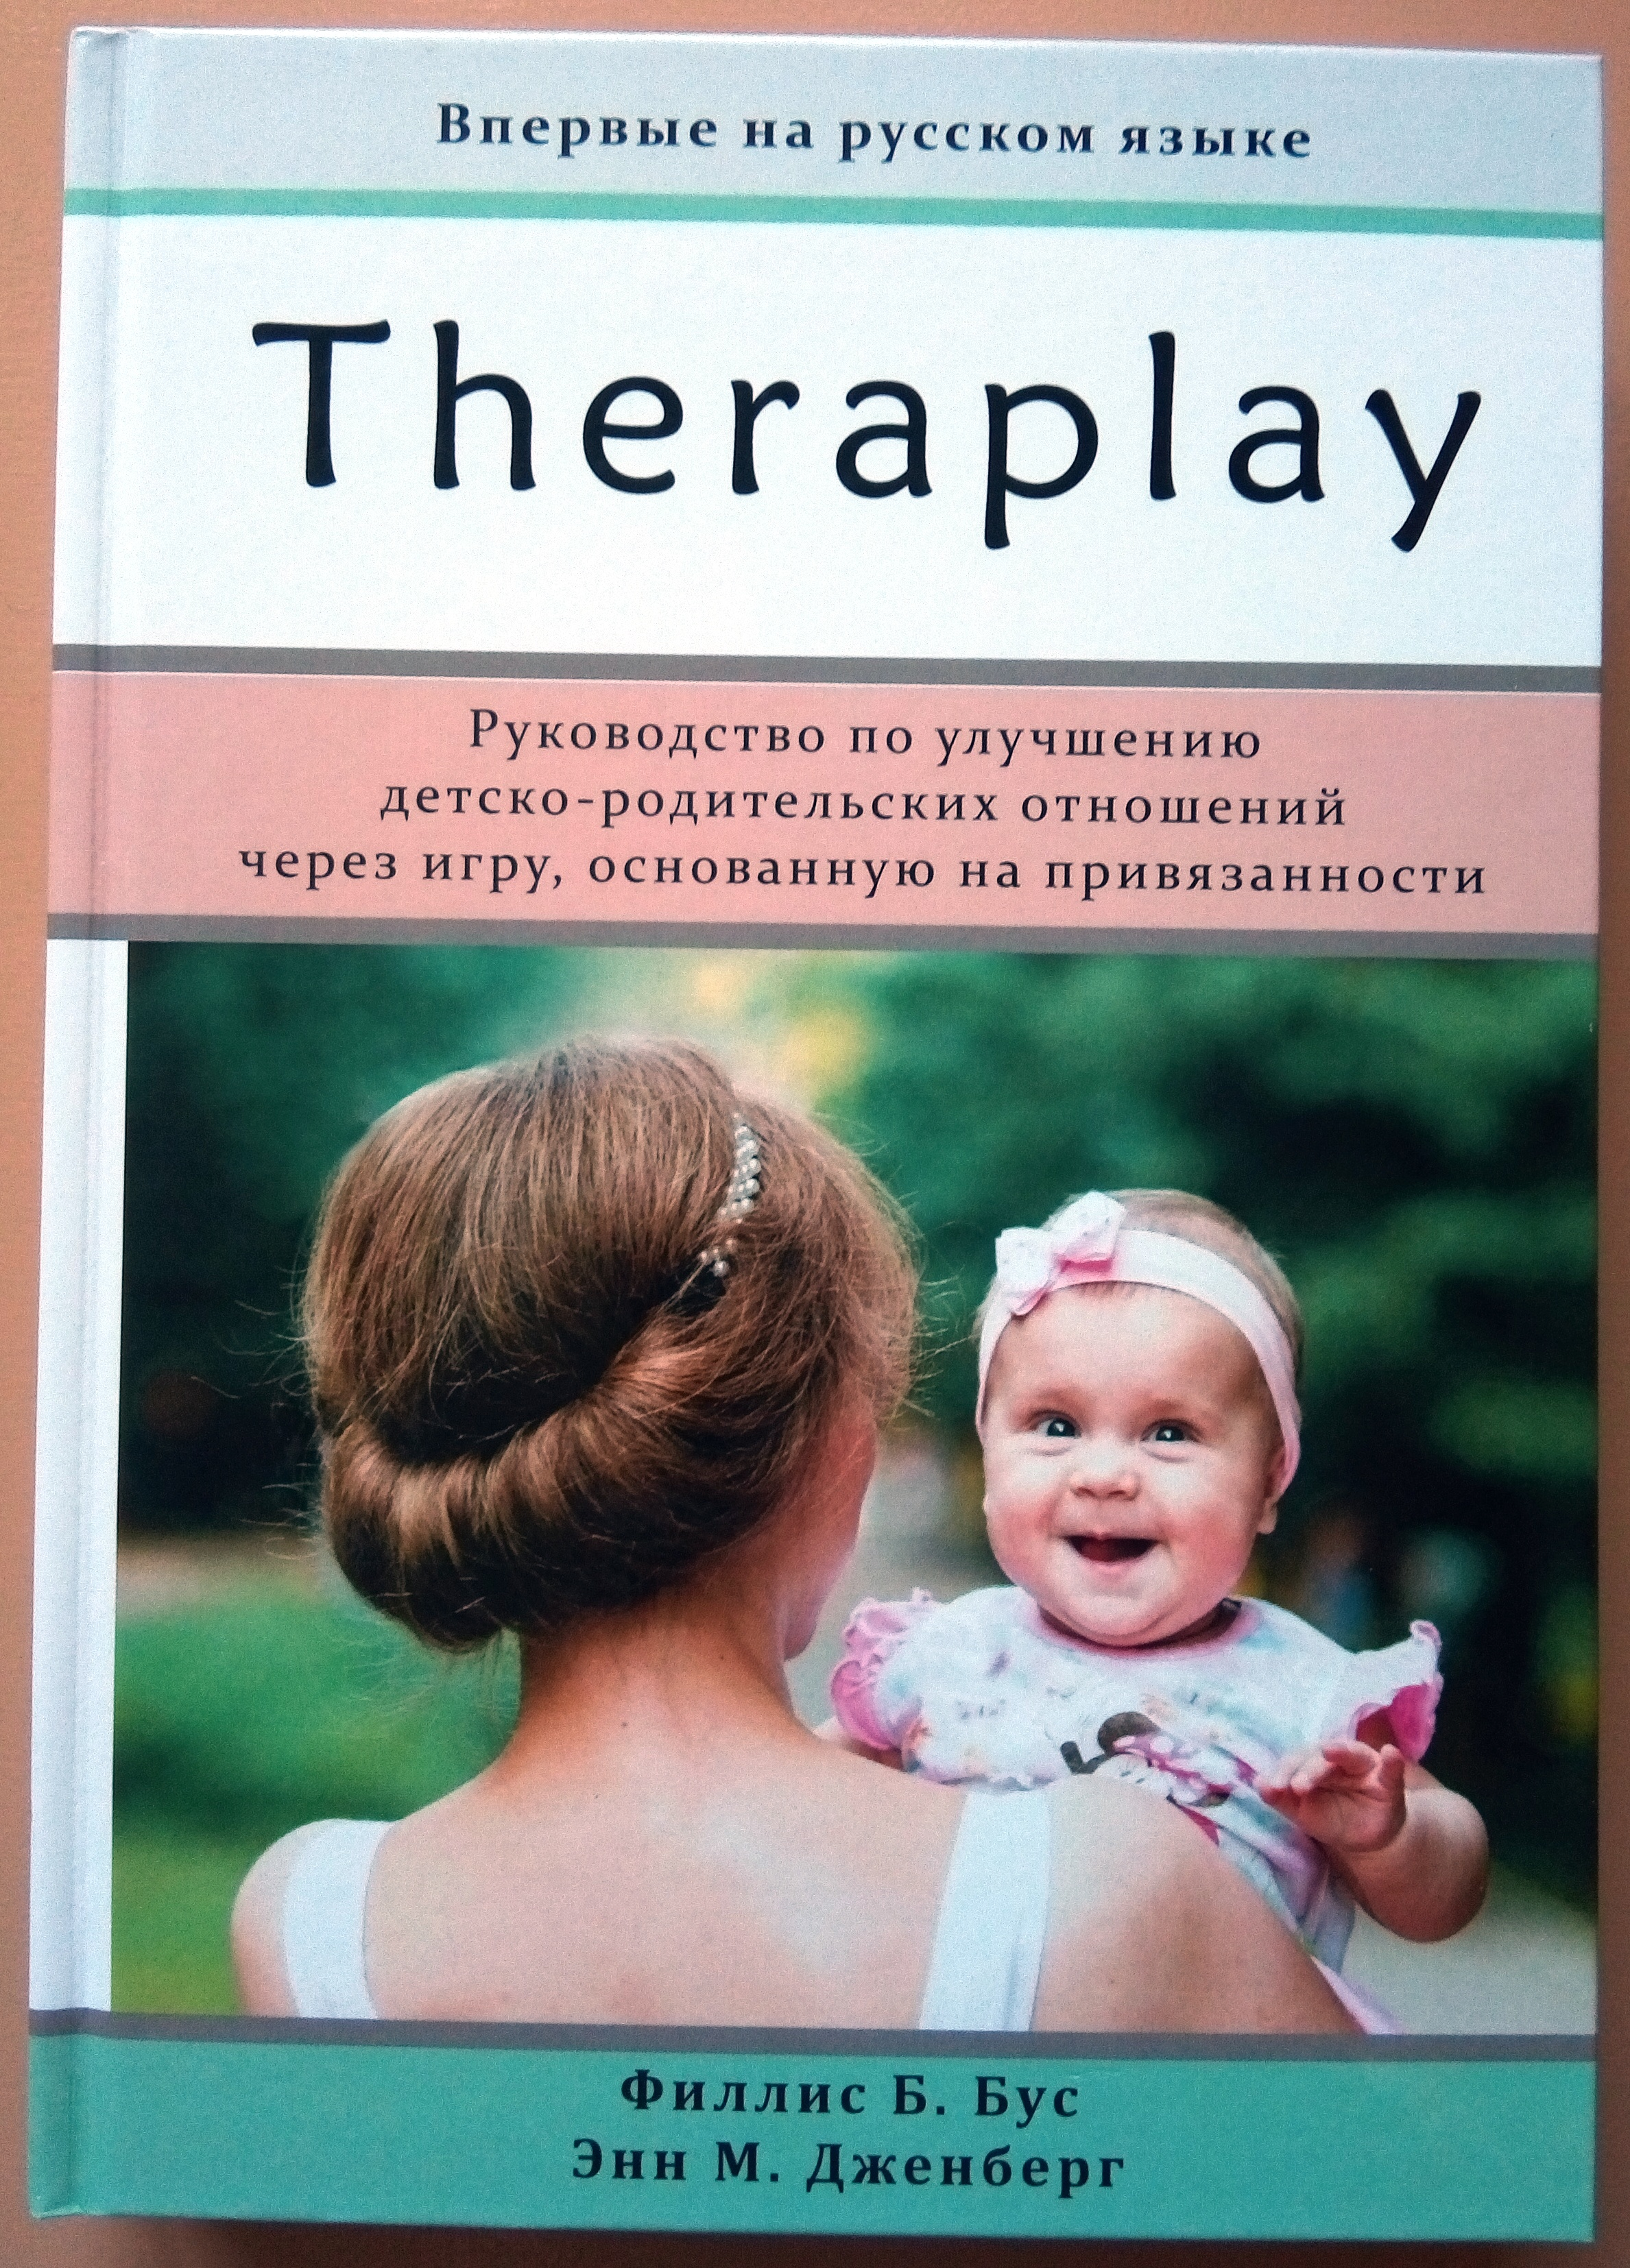 Theraplay, Филлис Б.Бус, Энн М. Дженберг